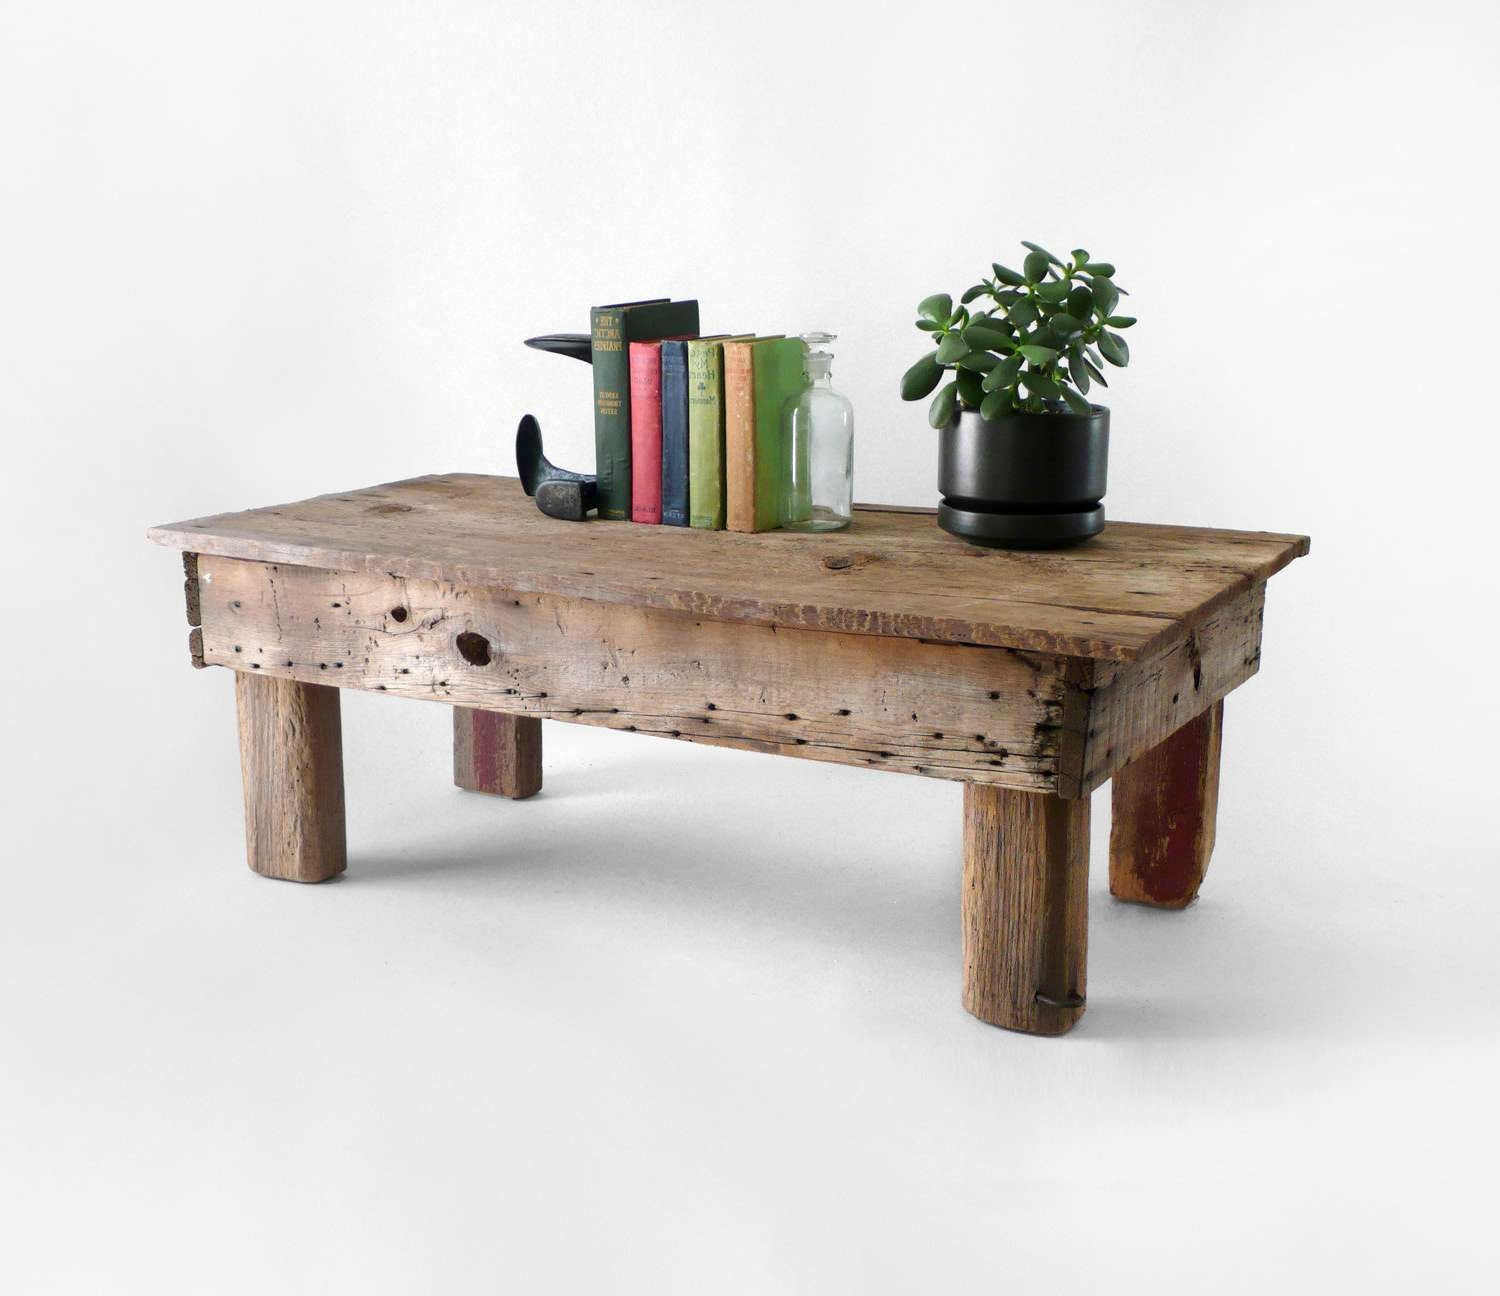 Popular Rustic Wooden Coffee Tables Regarding 13 Most Inspirational Rustic Wood Coffee Table Ideas For You To (View 14 of 20)